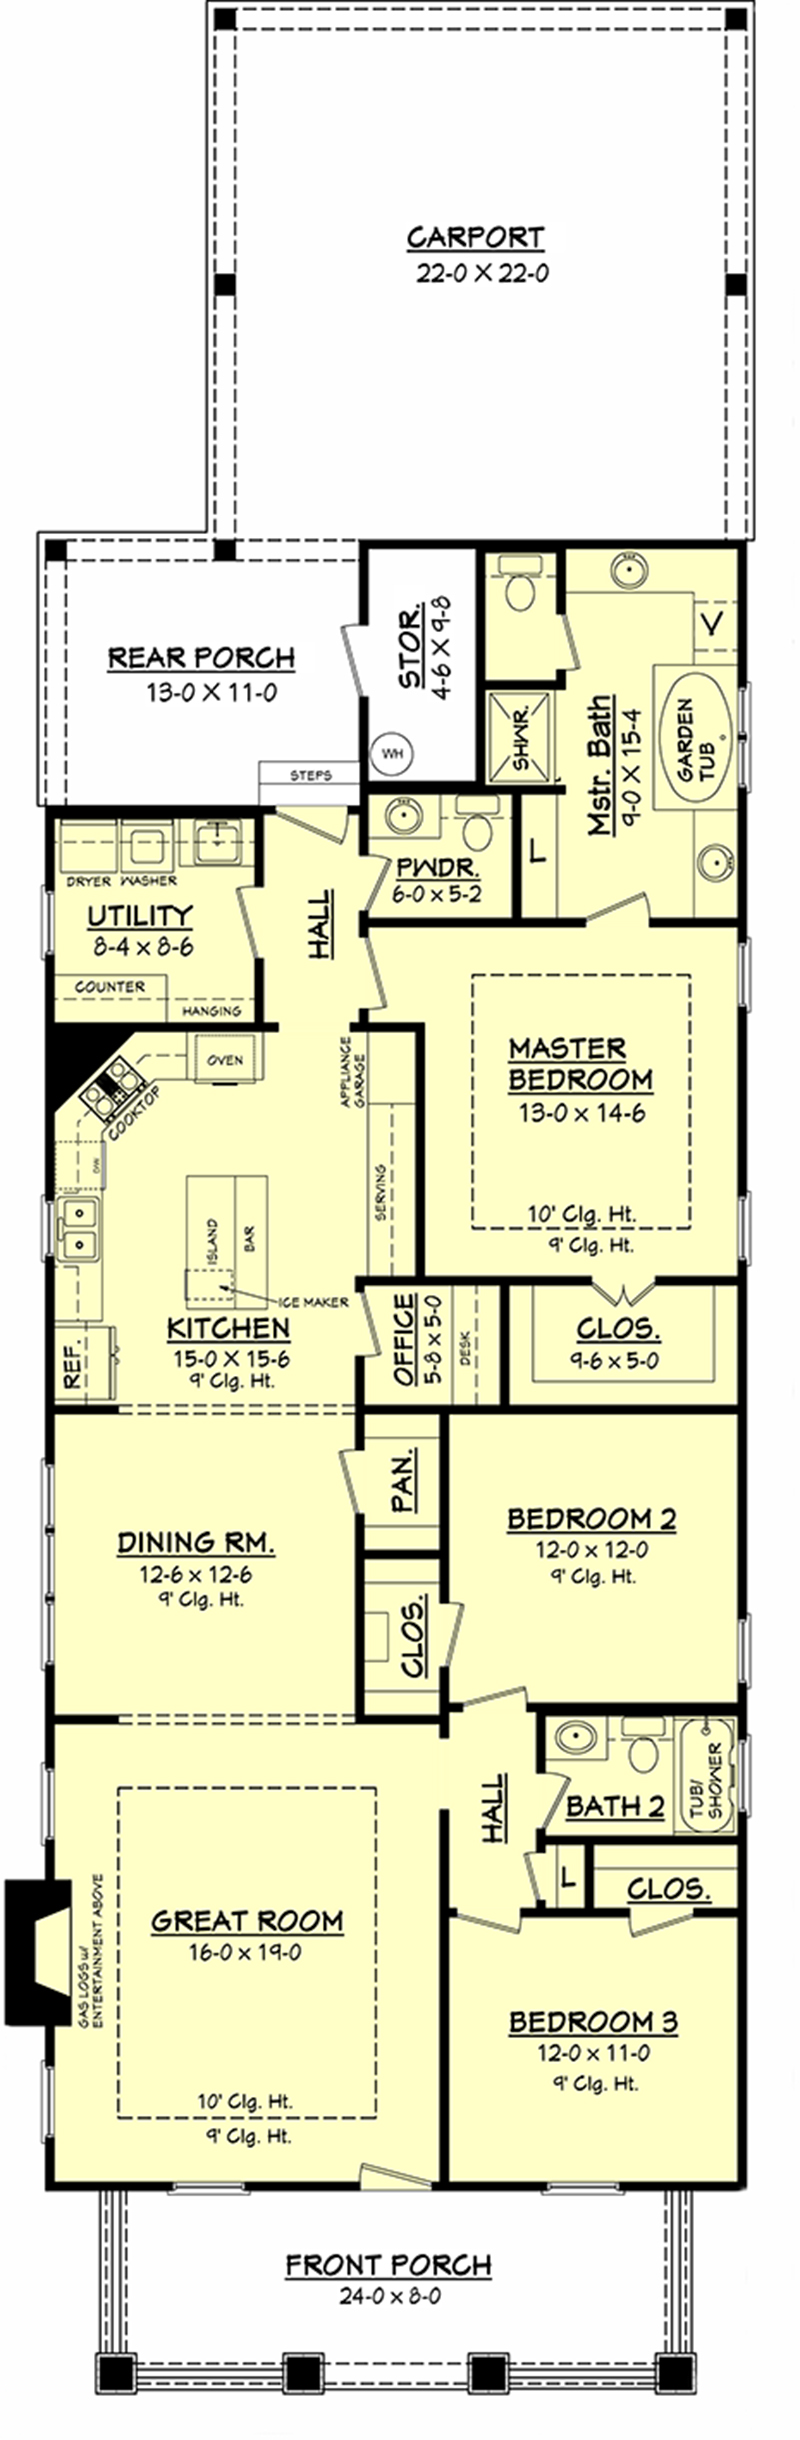 House plan 142 1079 3 bdrm 2 1 2 bath 1800 sq ft for 1 1 2 story floor plans